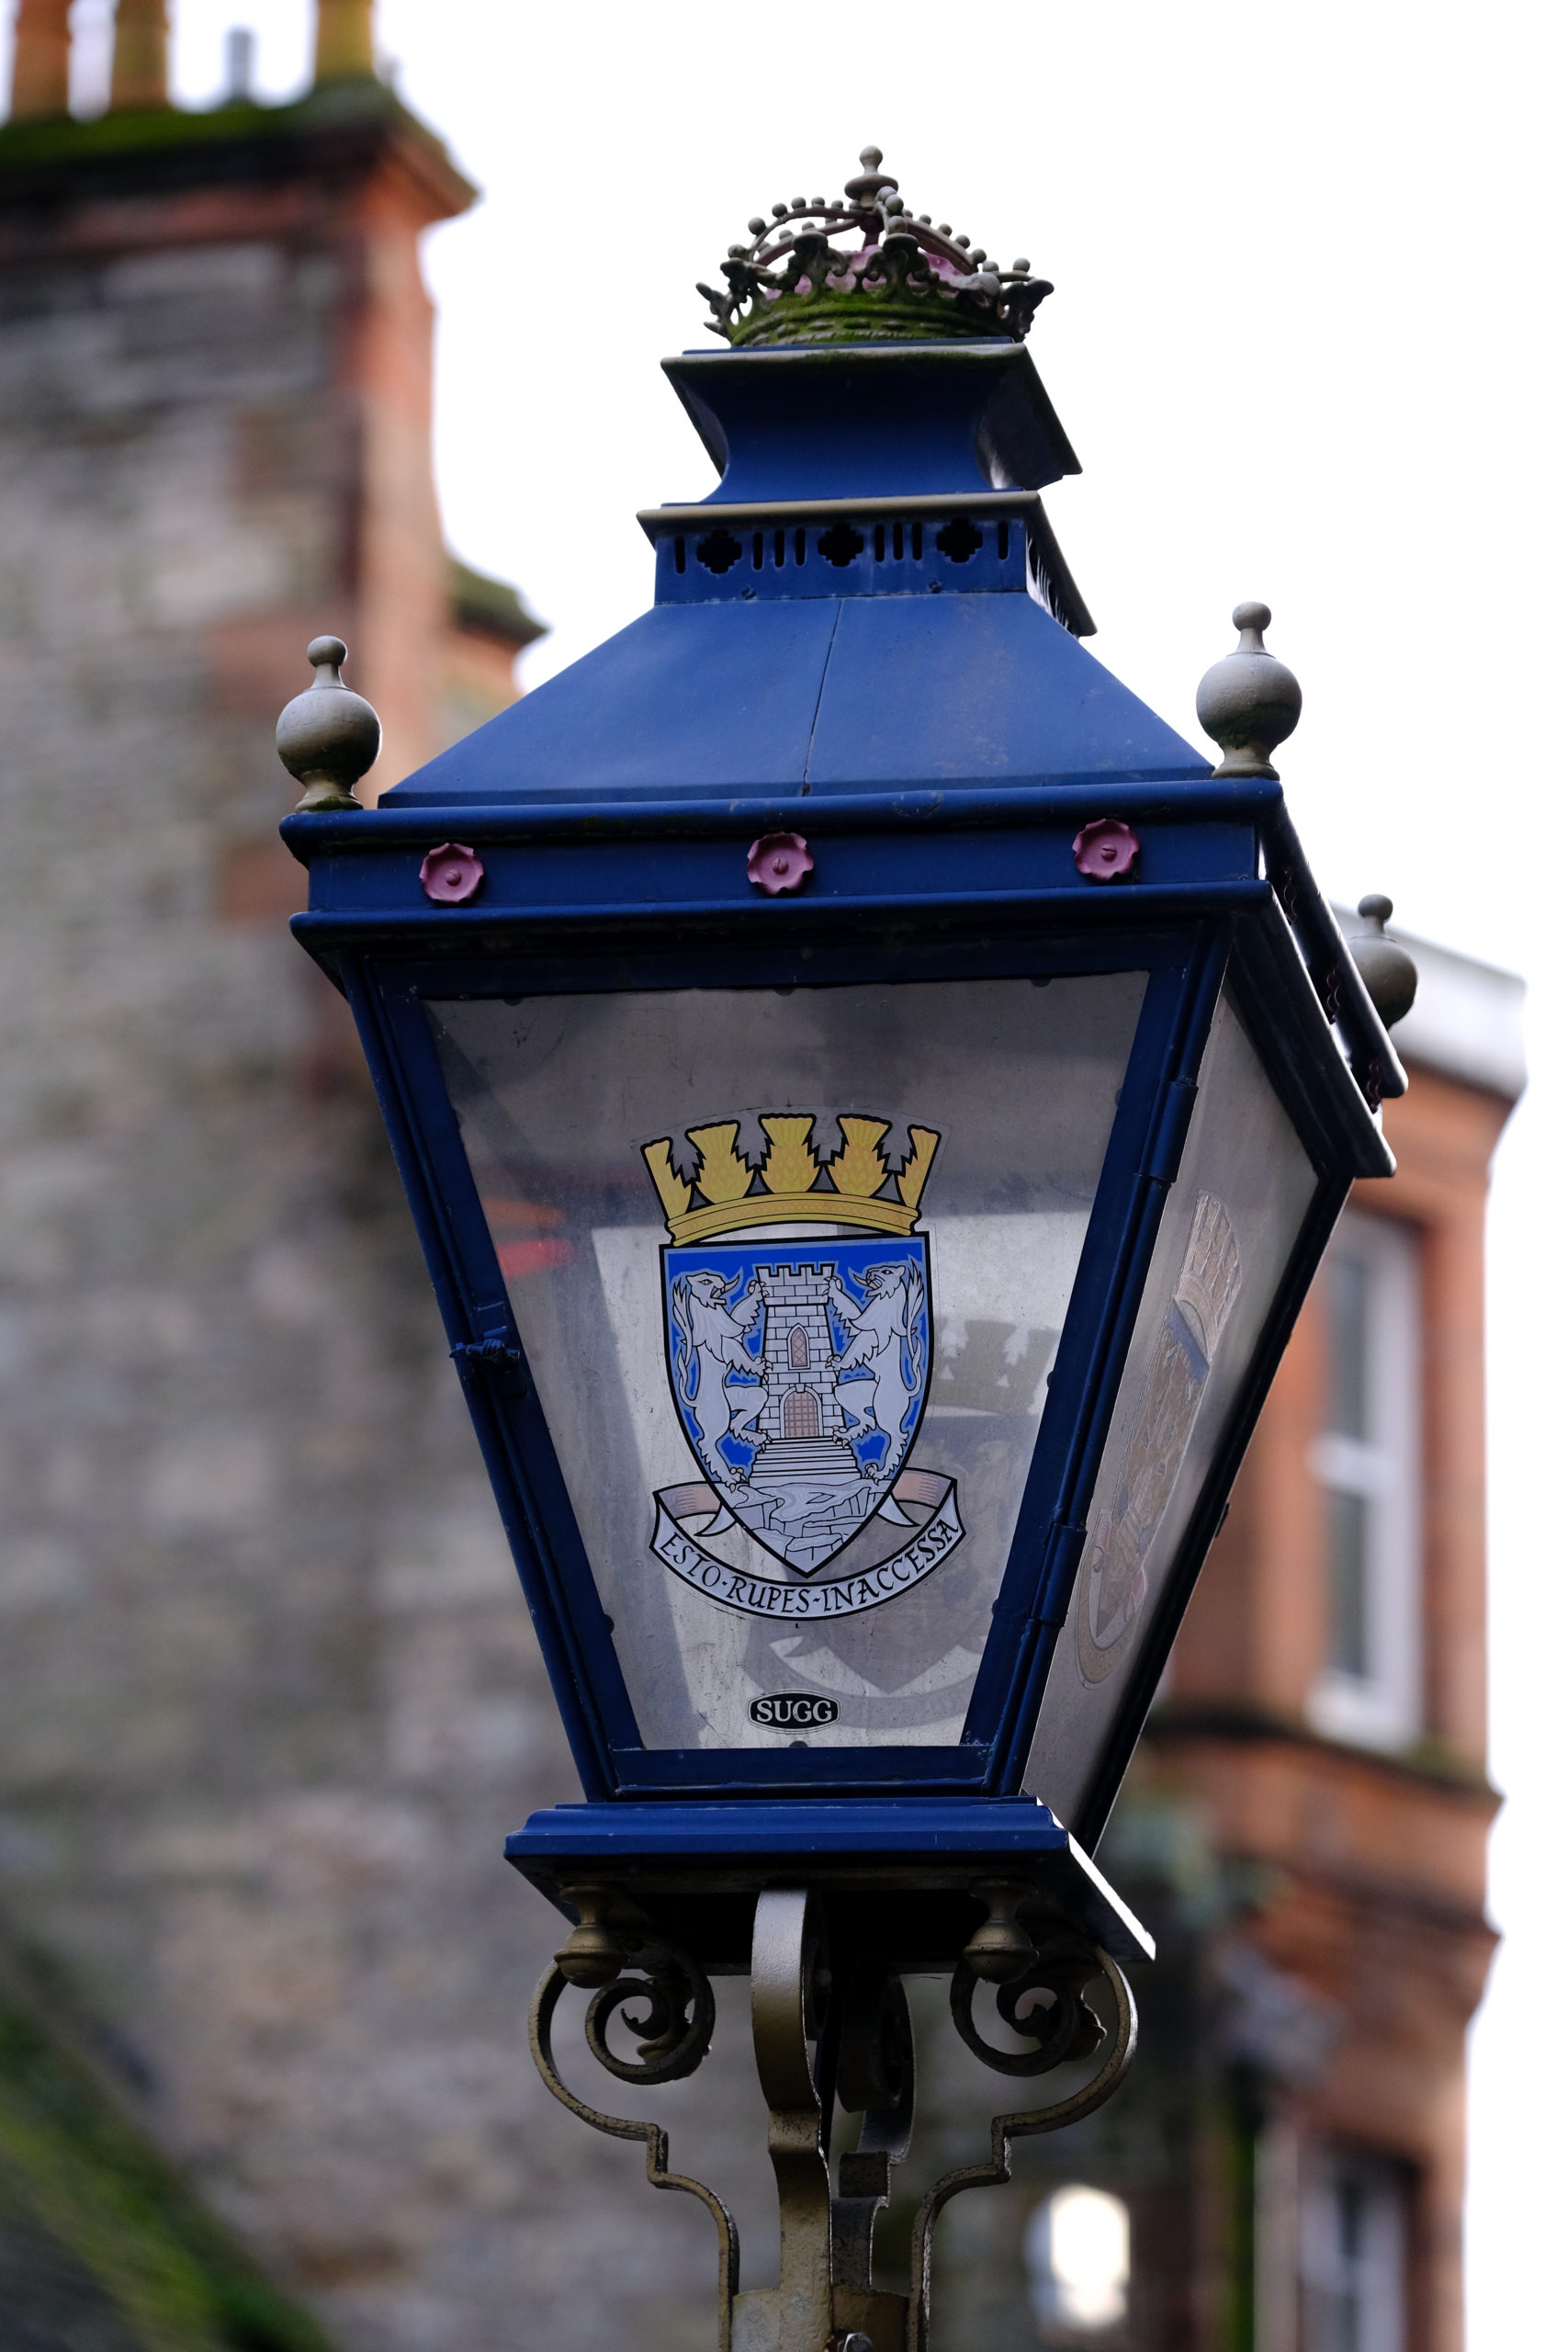 Lampost lamp cover with logo for Dunfermline town